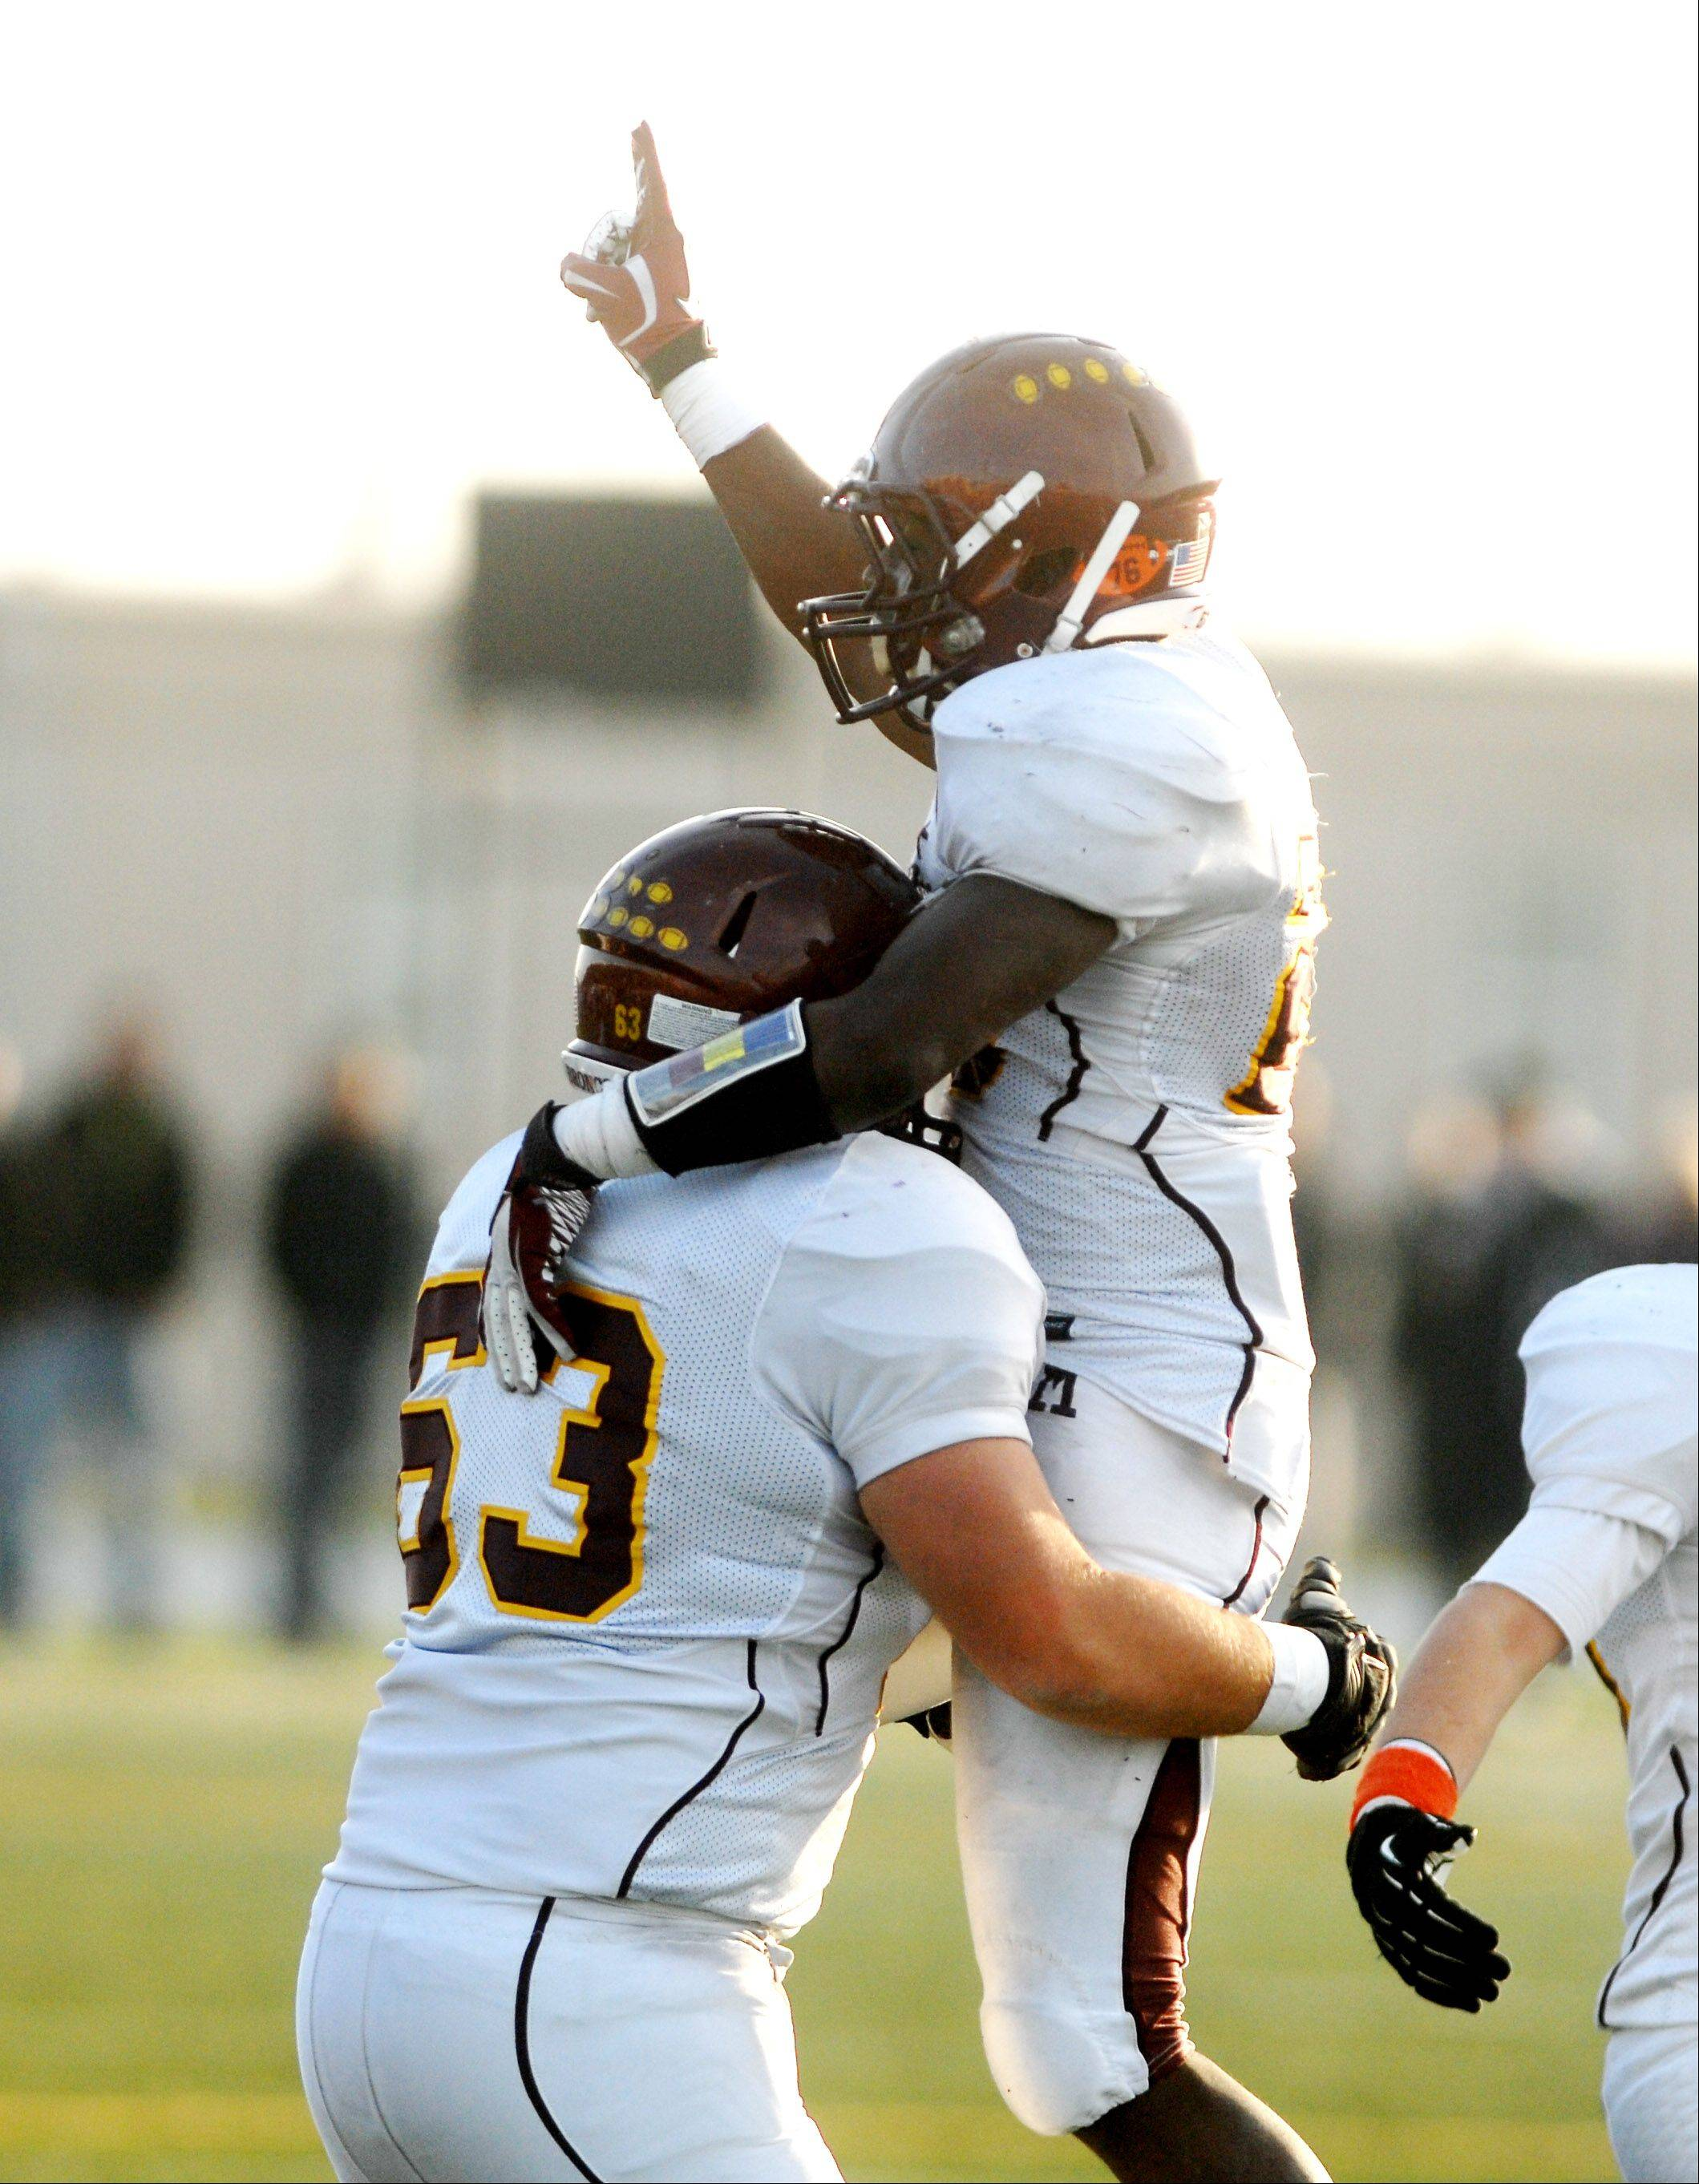 Michael Richmond holds Dimitri Taylor both of Montini after they sealed the win with a late touchdown during the Montini at Joliet Catholic Class 5A football semifinal Saturday.